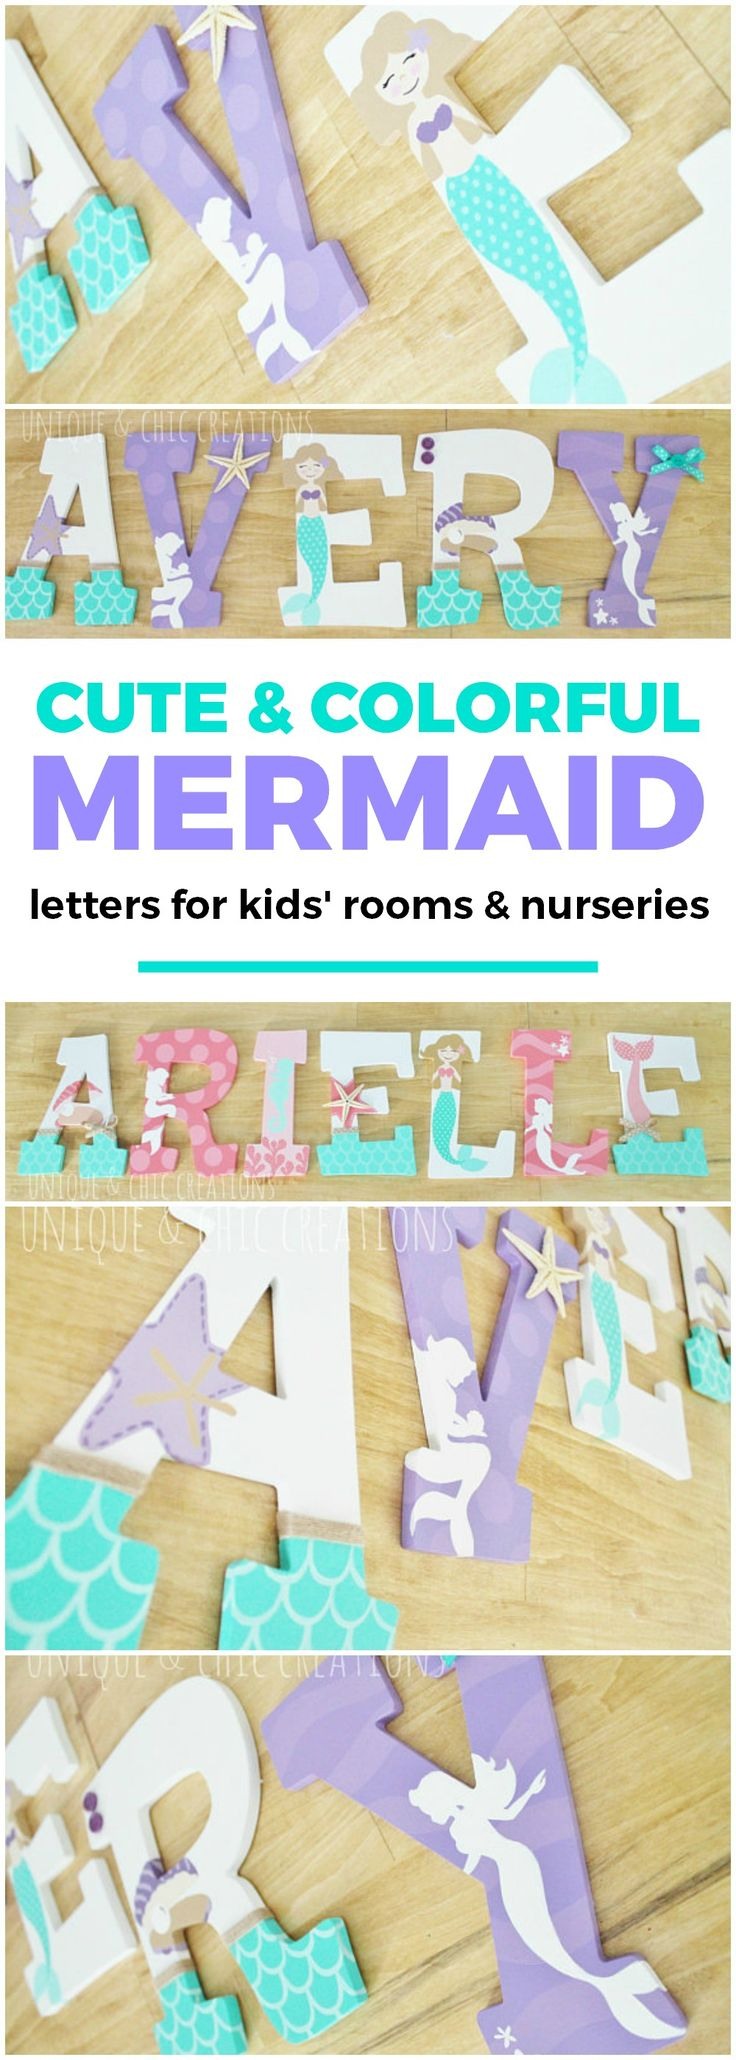 Little mermaid bedroom - Best 25 Little Mermaid Room Ideas On Pinterest Little Mermaid Bedroom Little Mermaid Nursery And Mermaid Room